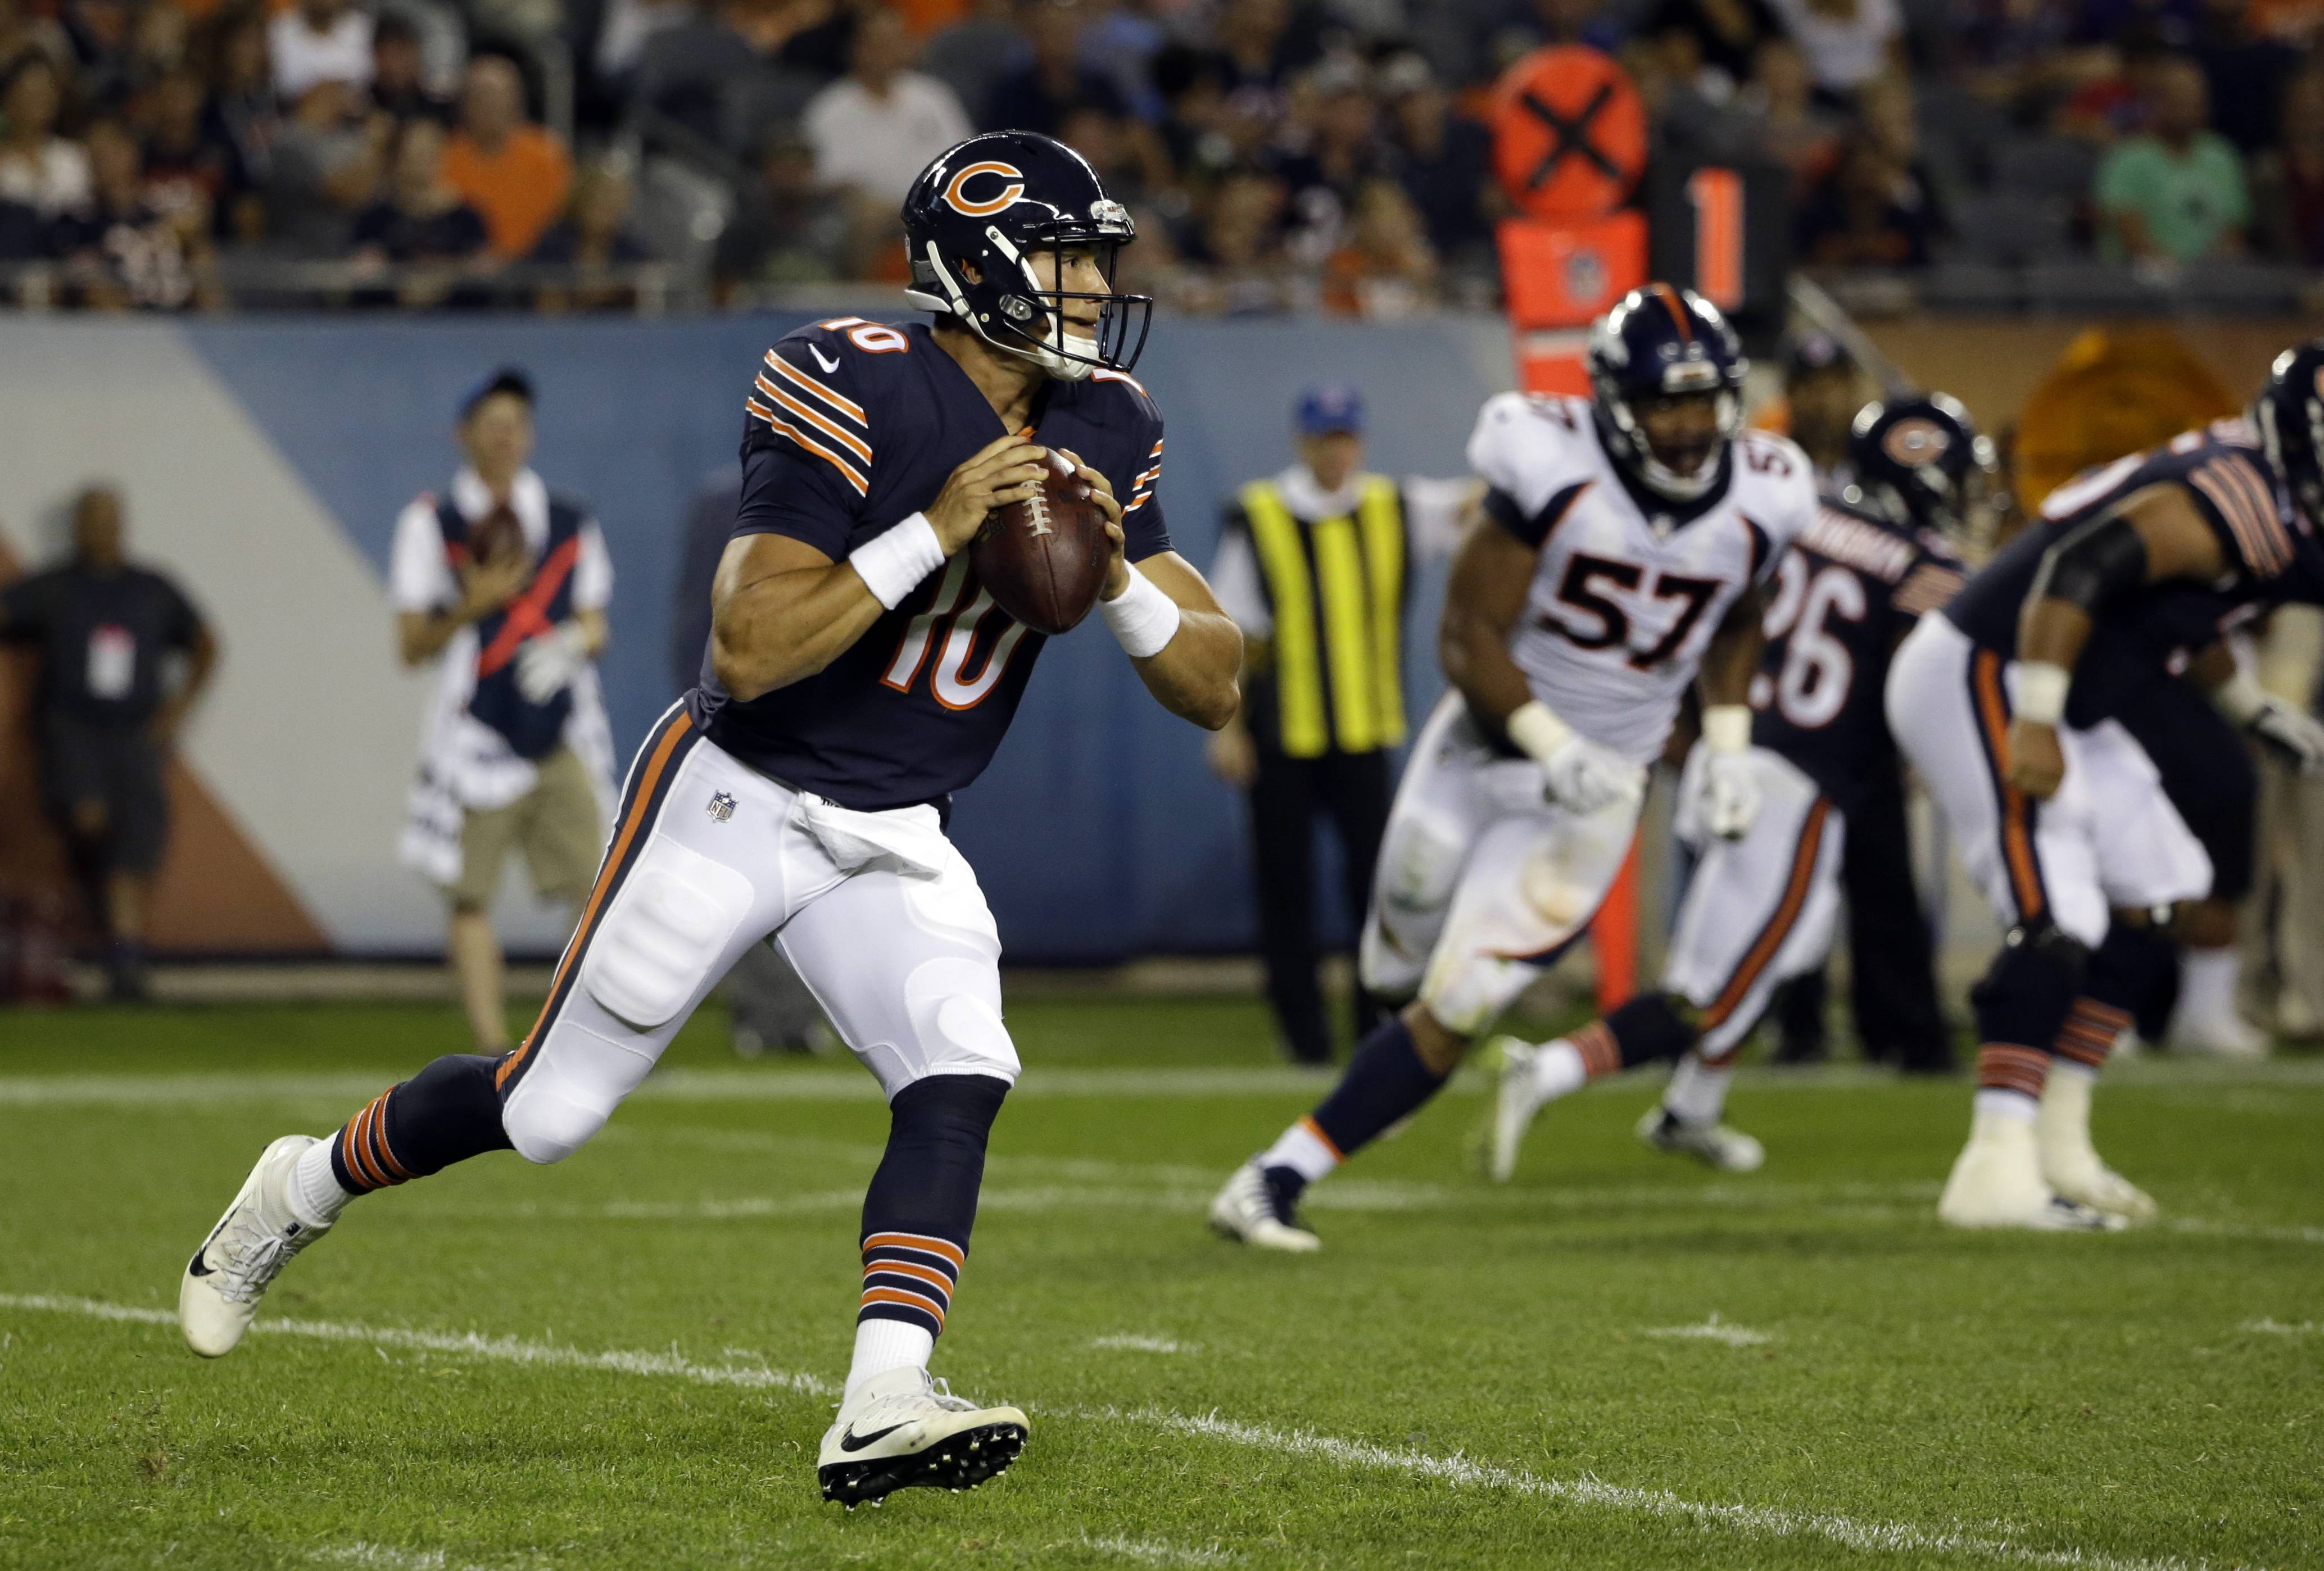 Chicago Bears quarterback Mitchell Trubisky (10) scrambles during the second half of an NFL preseason football game against the Denver Broncos, Thursday, Aug. 10, 2017, in Chicago. (AP Photo/Nam Y. Huh)